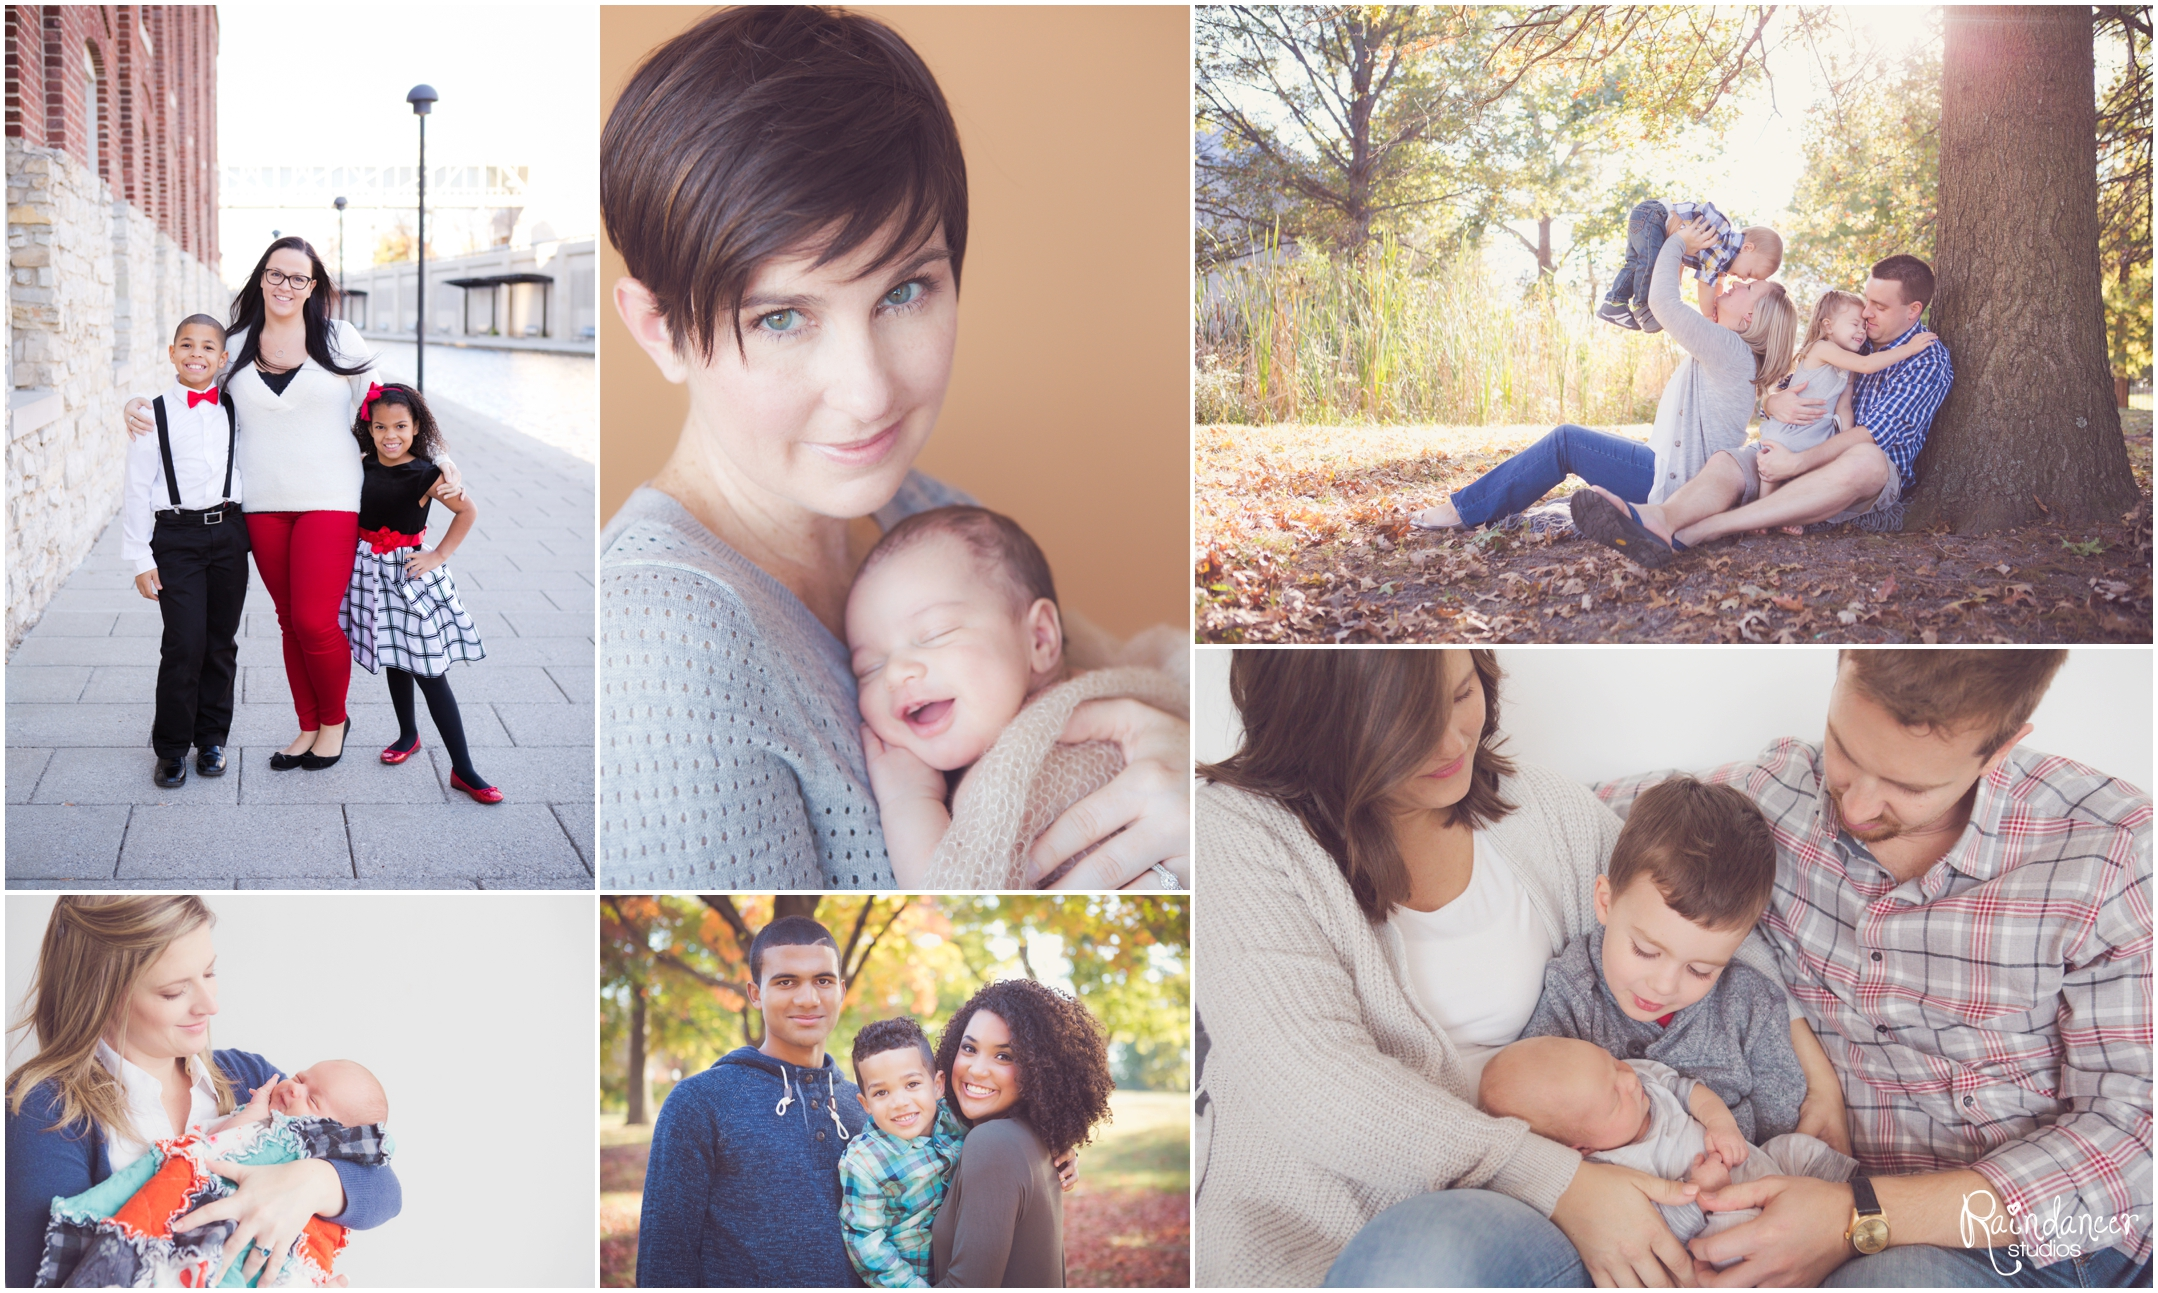 Indianapolis Family Photographer, Indianapolis Children Photographer, Indianapolis Newborn Photographer, Indianapolis Lifestyle photographer